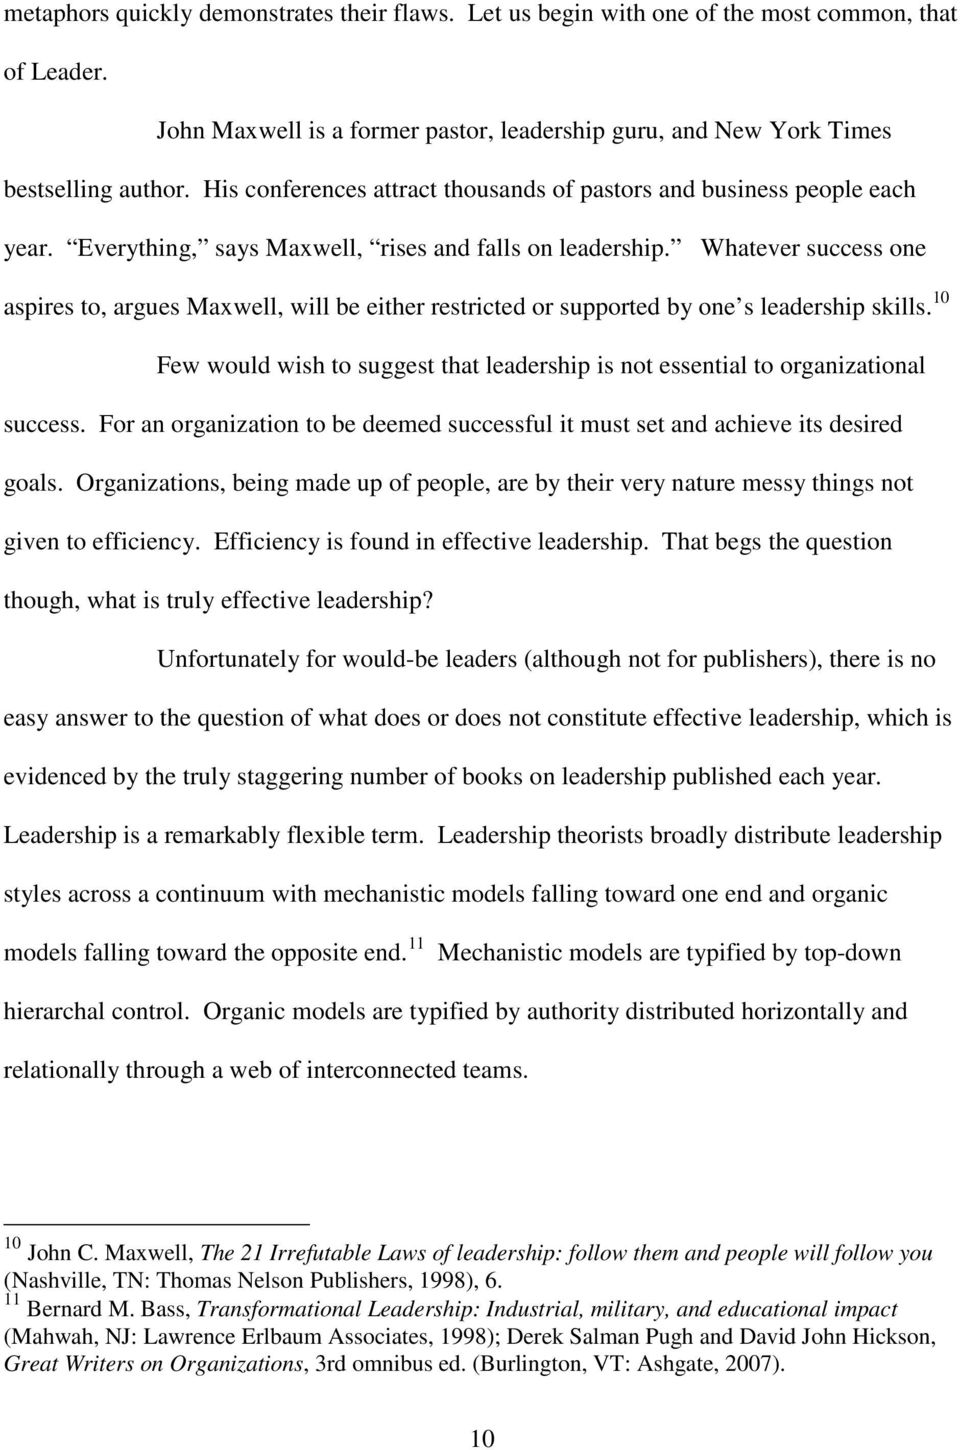 Whatever success one aspires to, argues Maxwell, will be either restricted or supported by one s leadership skills.